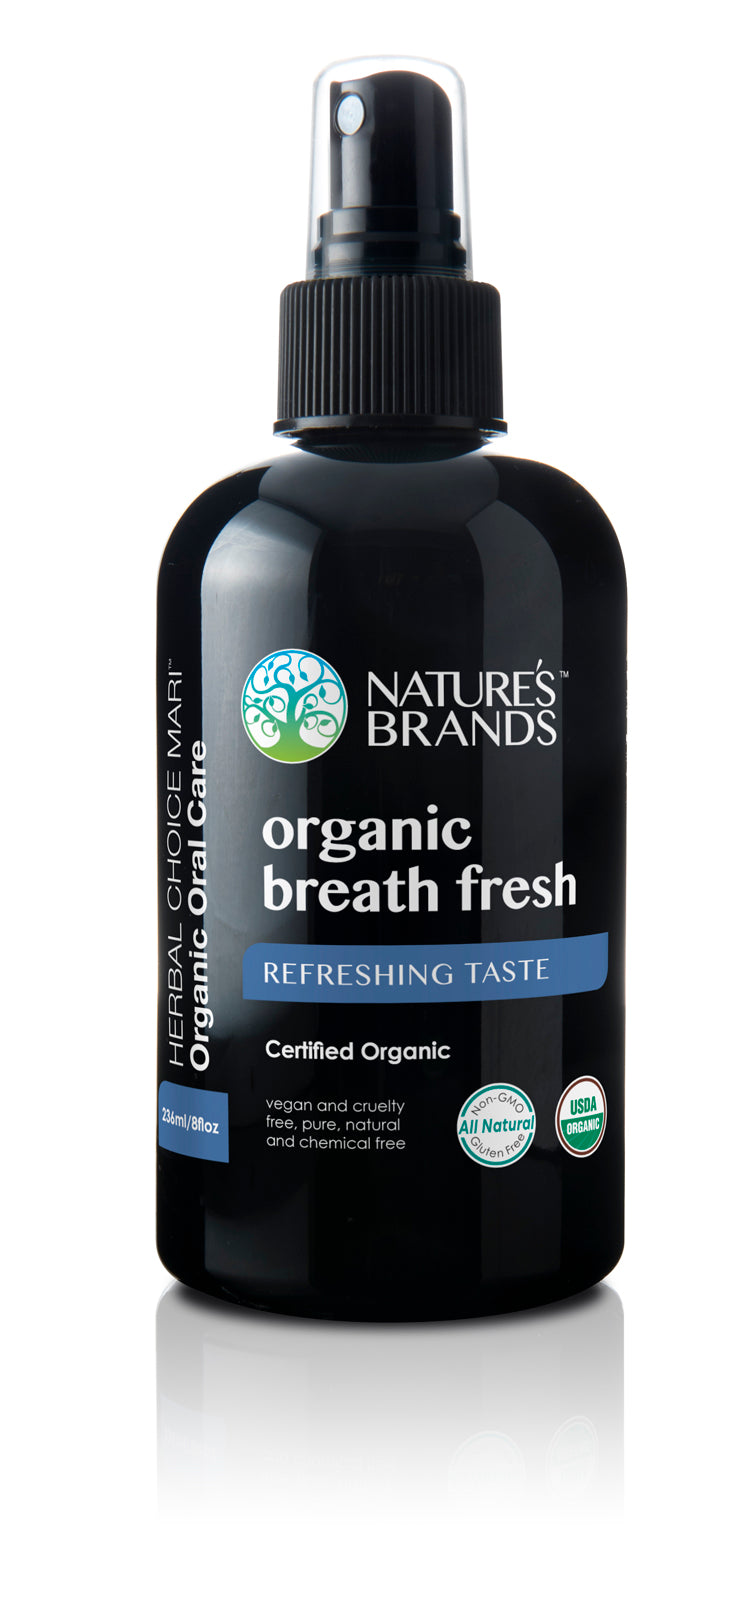 Herbal Choice Mari Organic Breath Fresh - Herbal Choice Mari Organic Breath Fresh - Herbal Choice Mari Organic Breath Fresh